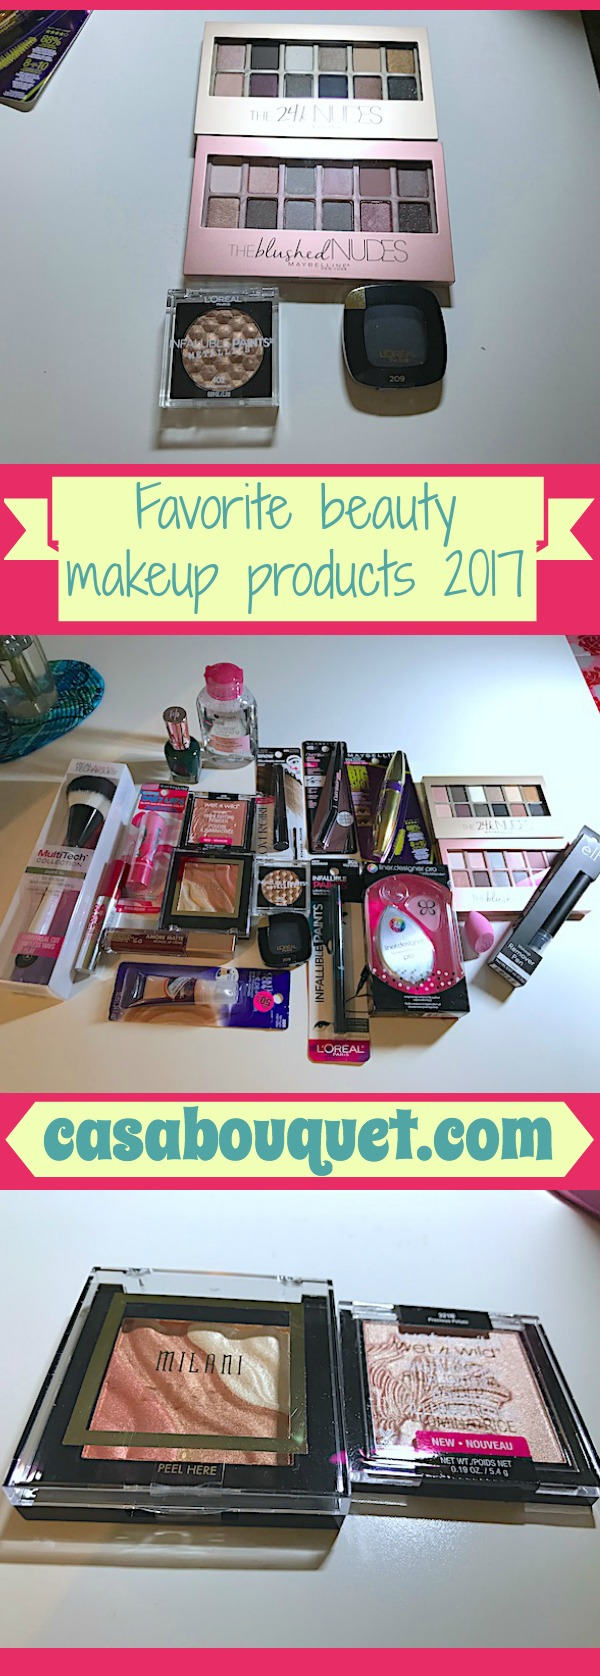 "My latest beauty makeup products roundup includes eyes, lips, face, and more. These are my ""drugstore"" picks."